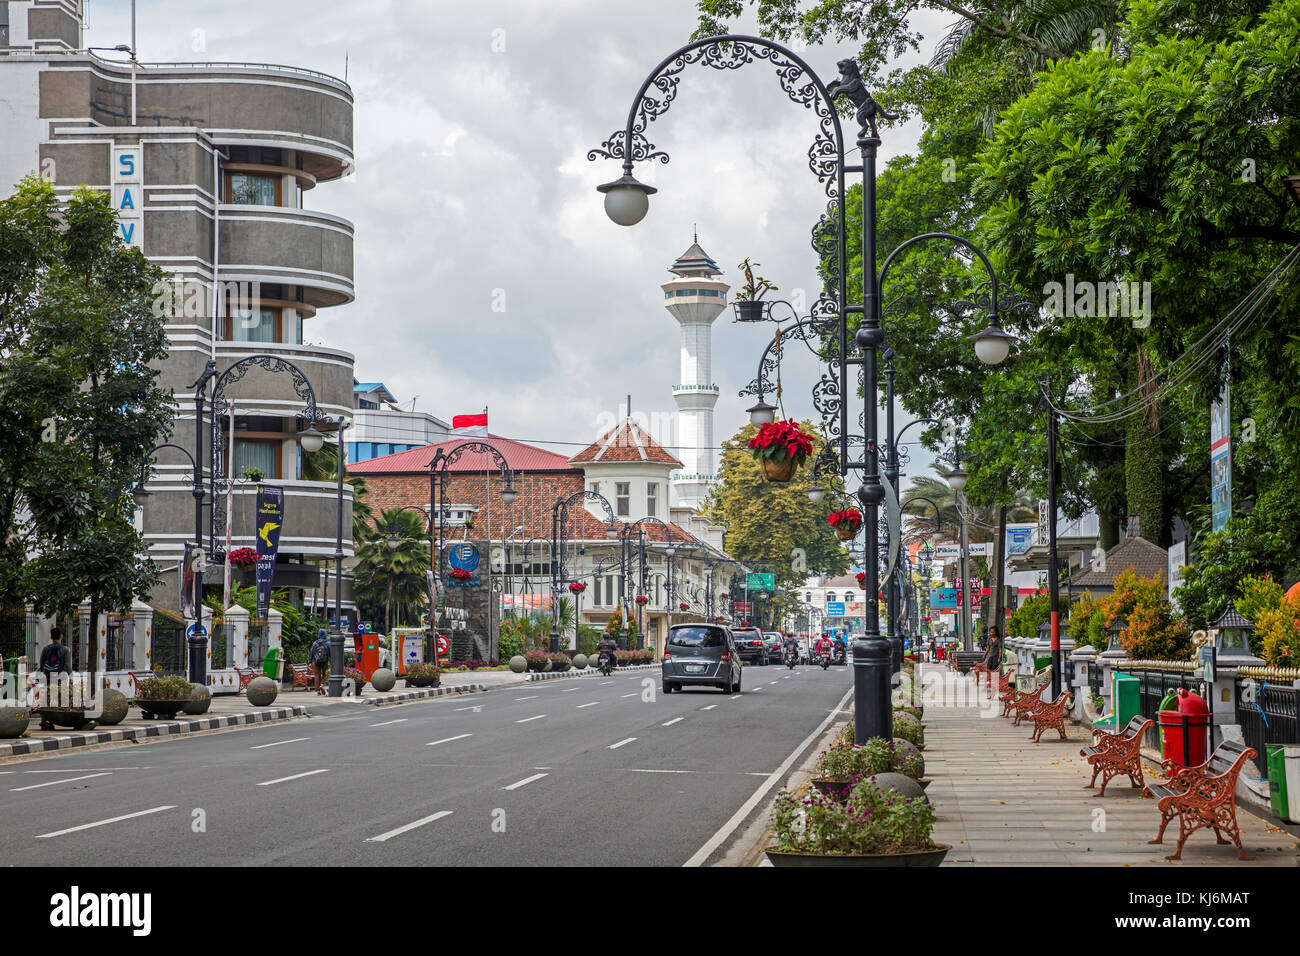 Minaret of the Grand Mosque of Bandung and Savoy Homann Bidakara Hotel in the Jalan Asia-Afrika street in the city - Stock Image